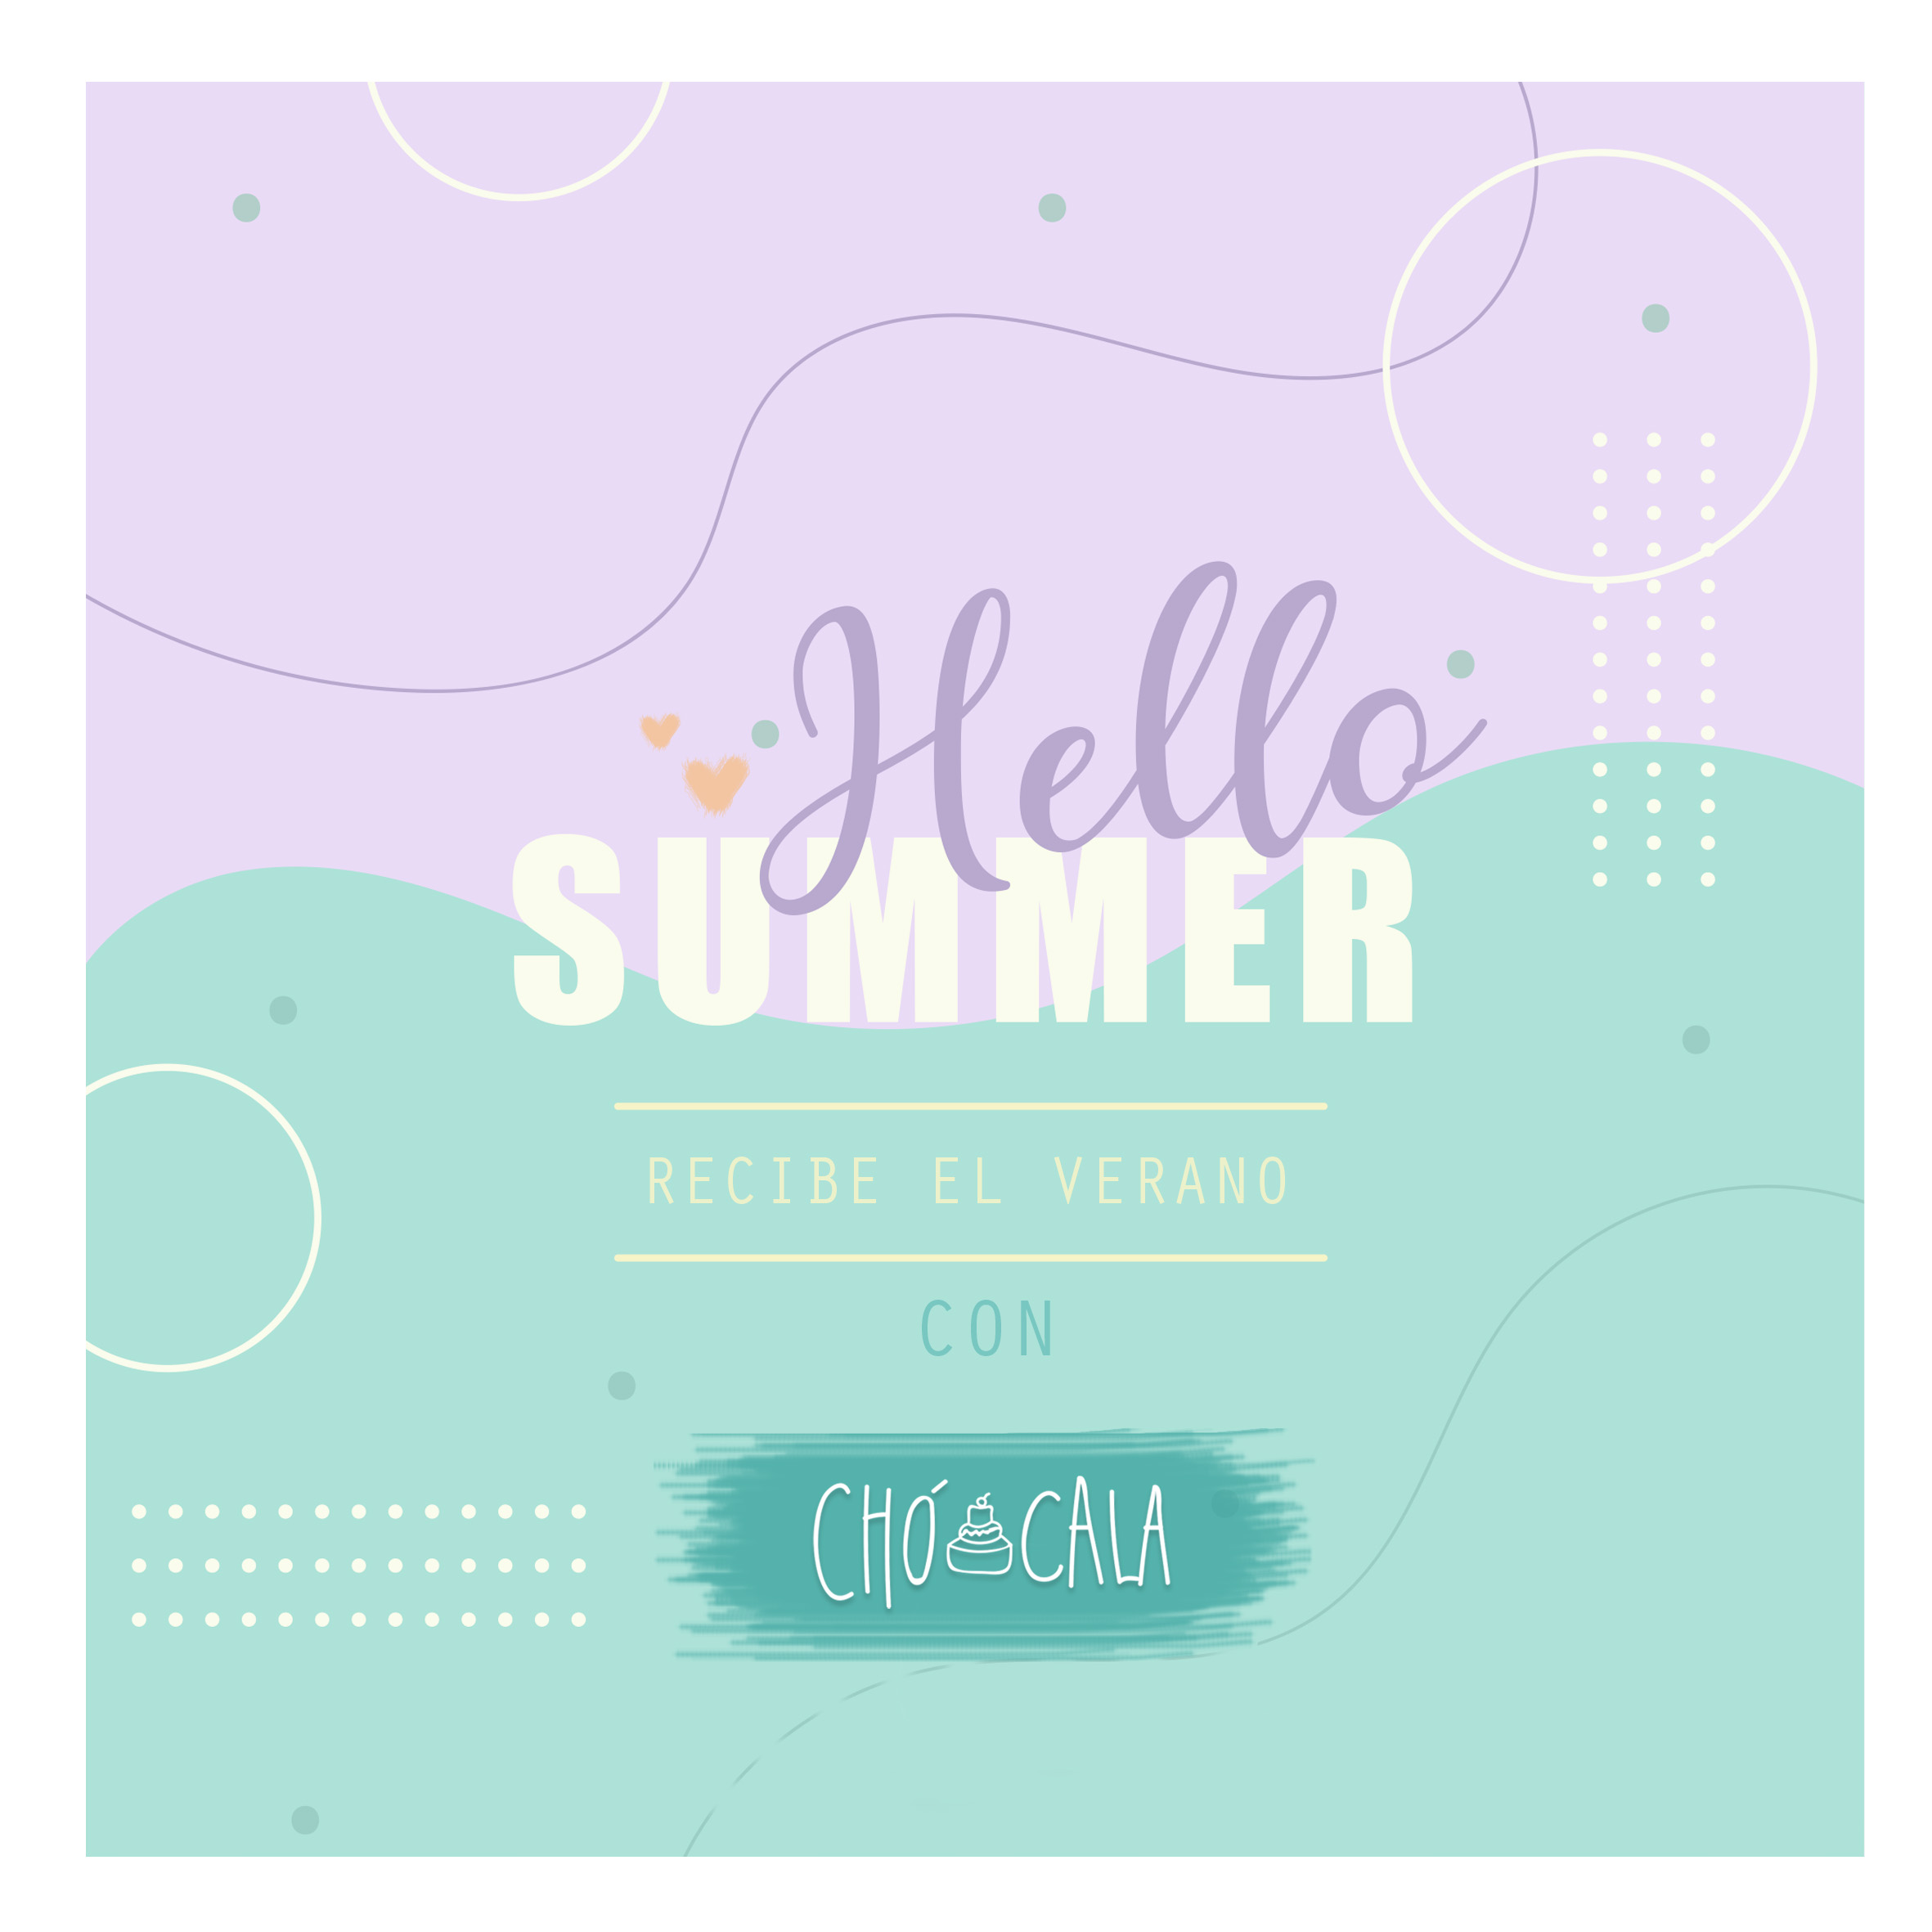 Hello_summer_ideas_chocala